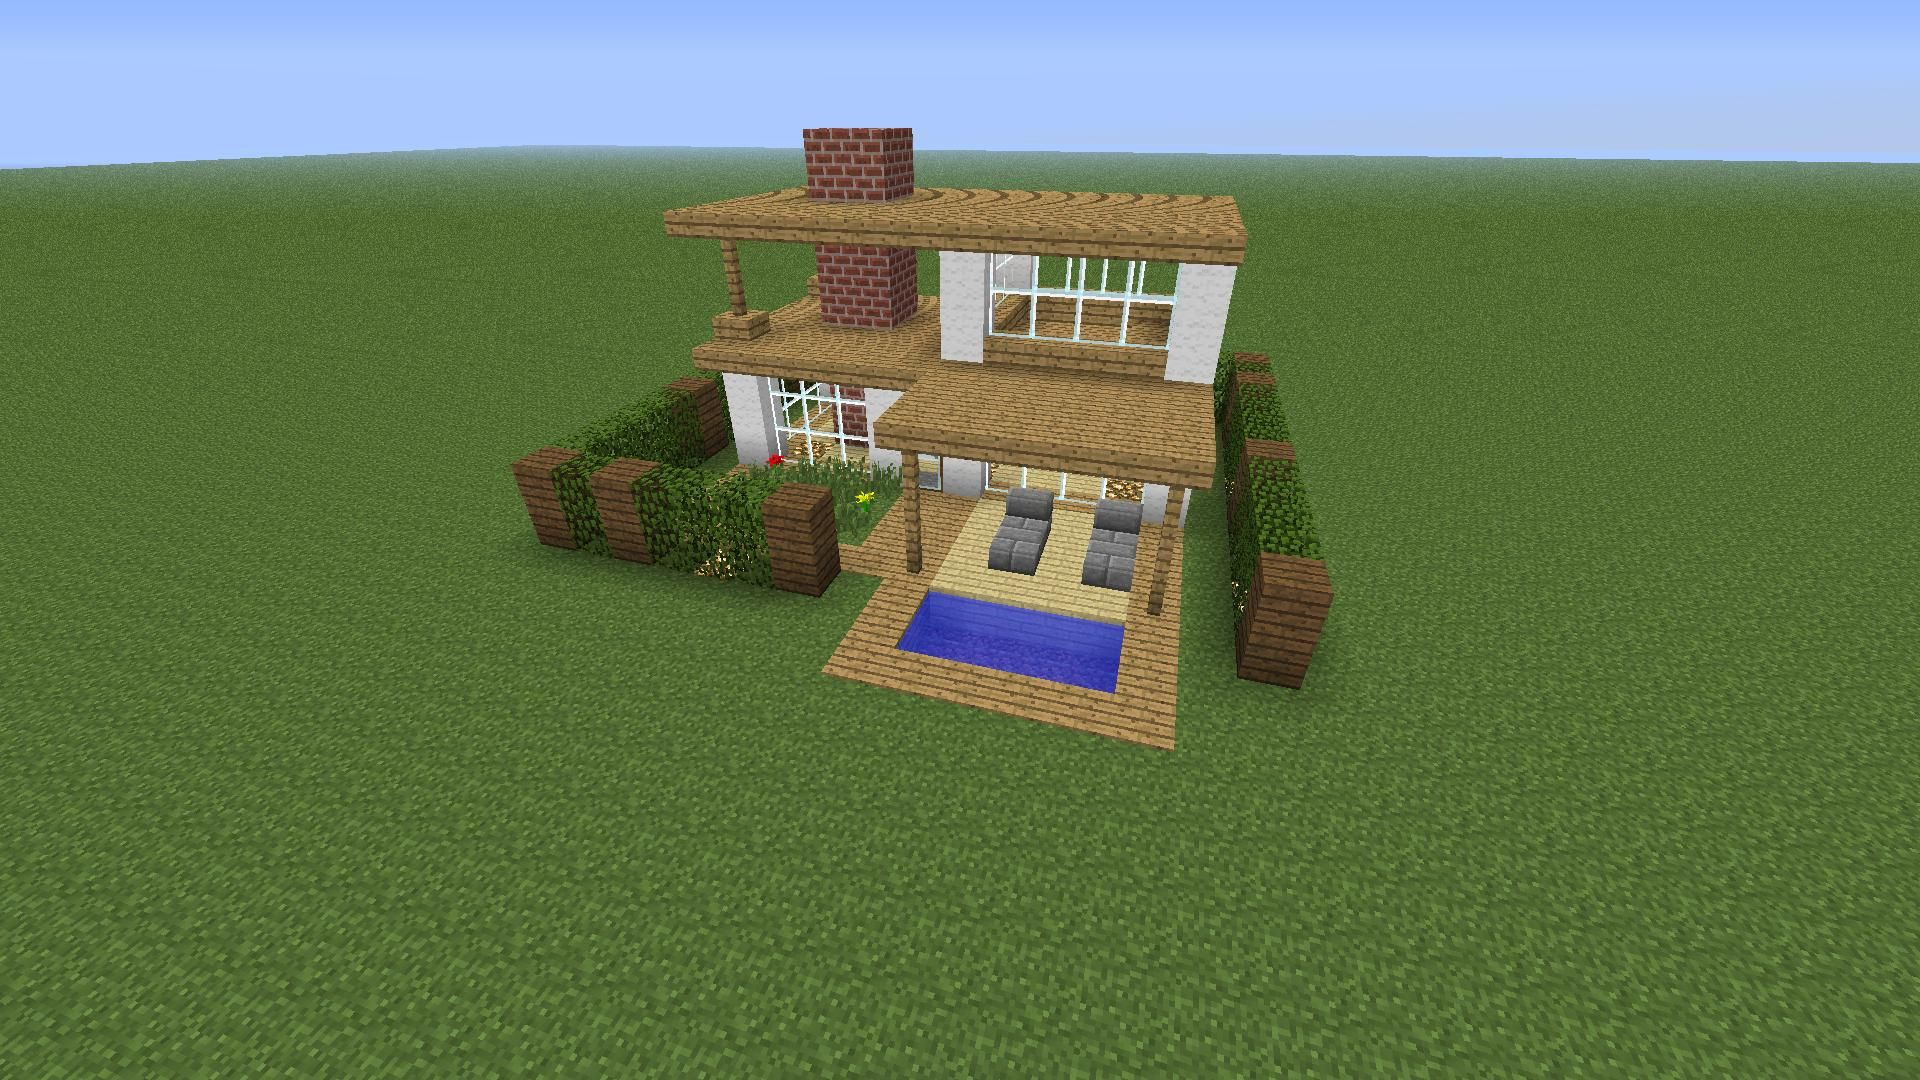 A modern minecraft house that I could probably pull off ...